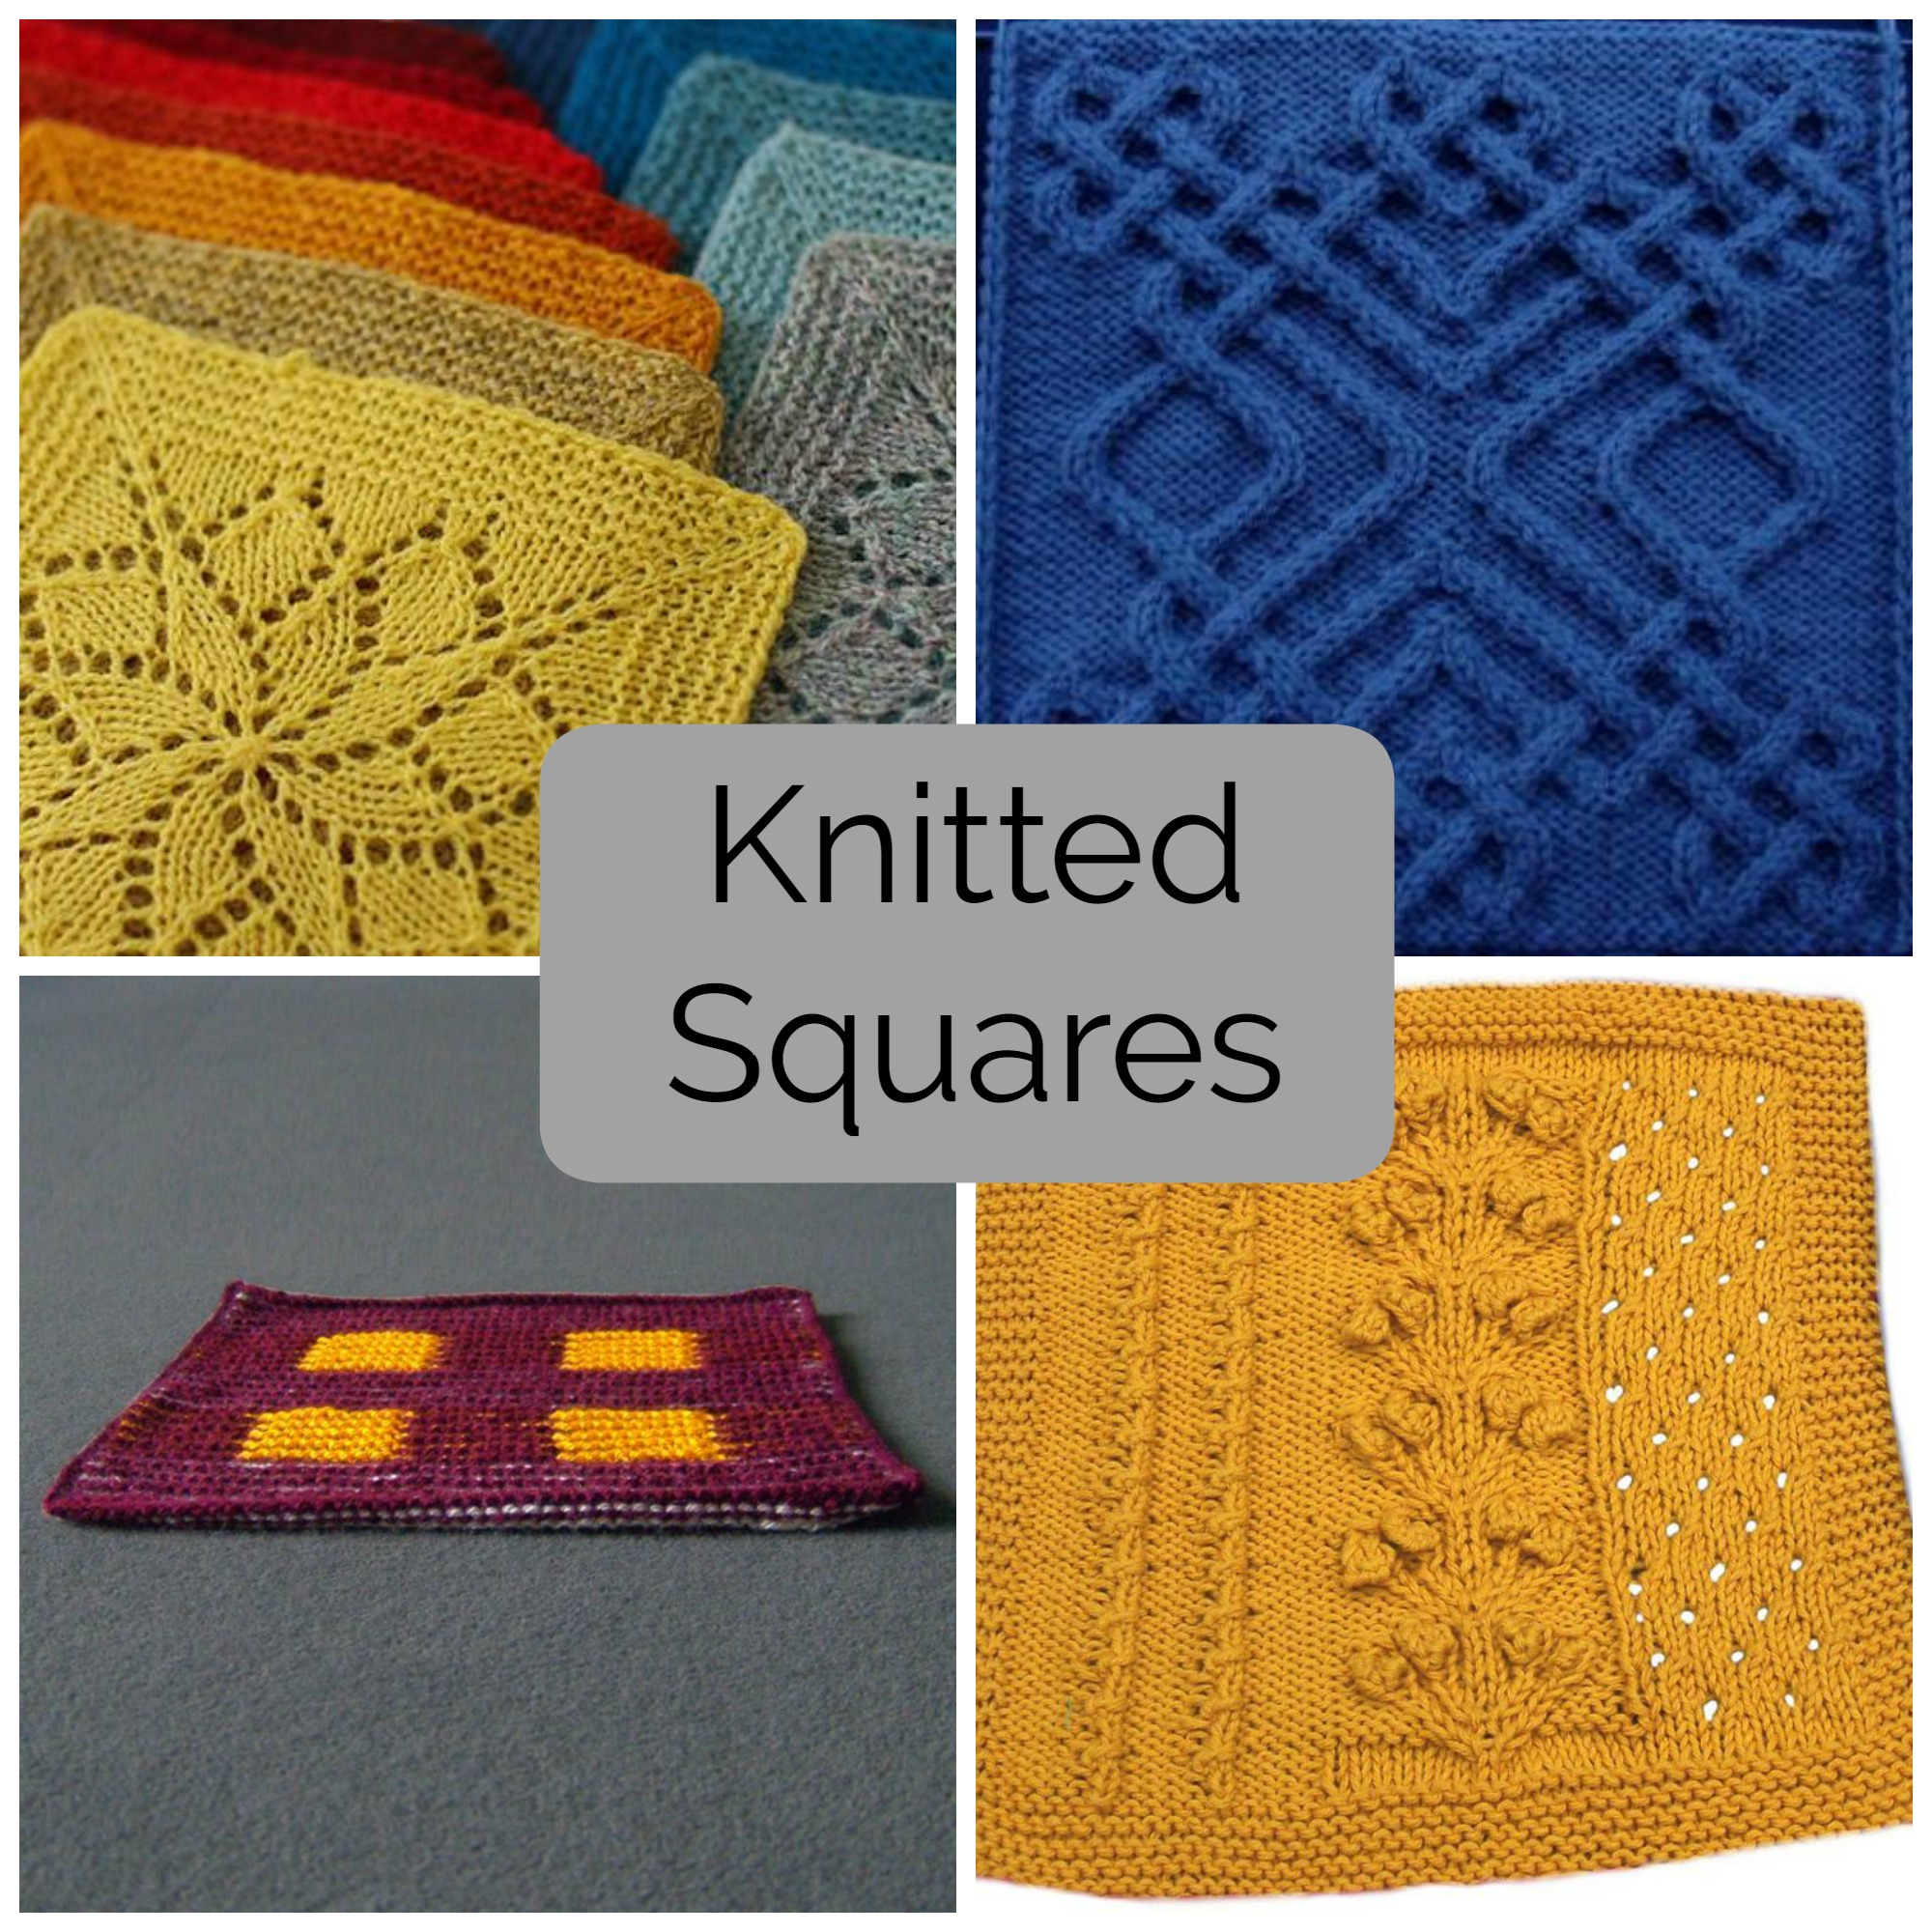 Knitted Squares Patterns Free Knitting Patterns For 12 Inch Squares